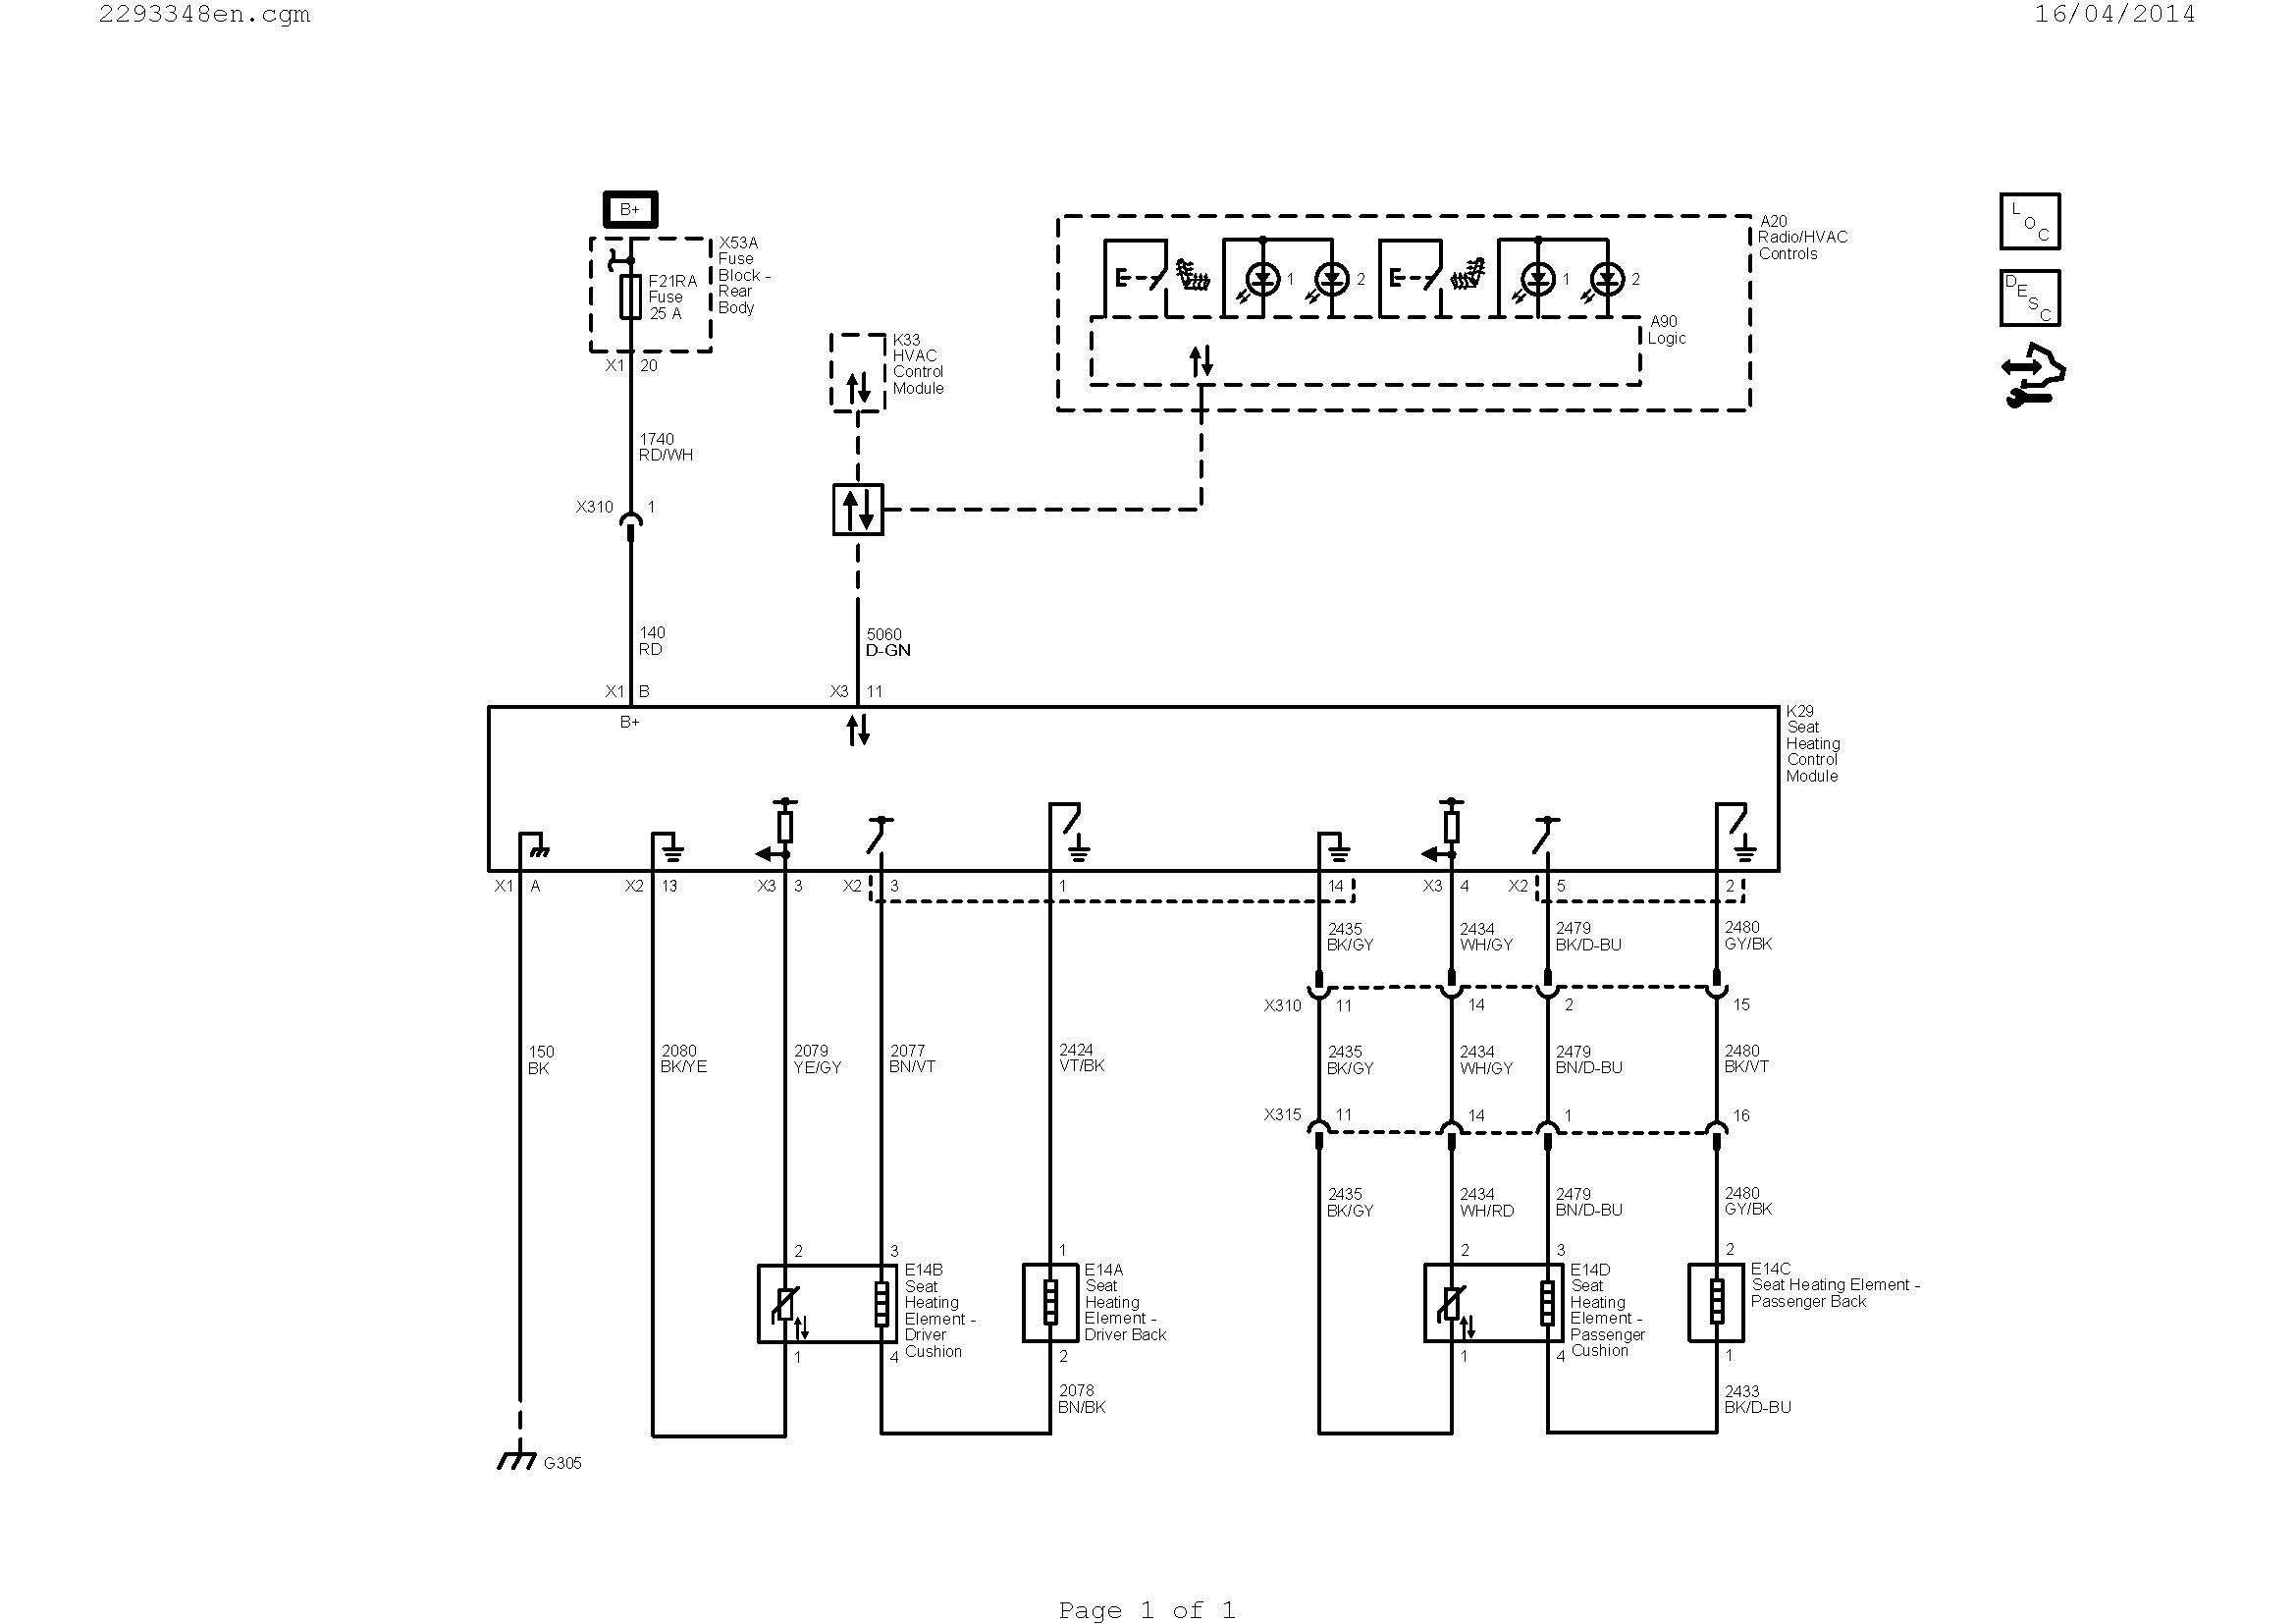 central air conditioner wiring diagram Download-ac thermostat wiring diagram Collection Wiring A Ac Thermostat Diagram New Wiring Diagram Ac Valid 4-p